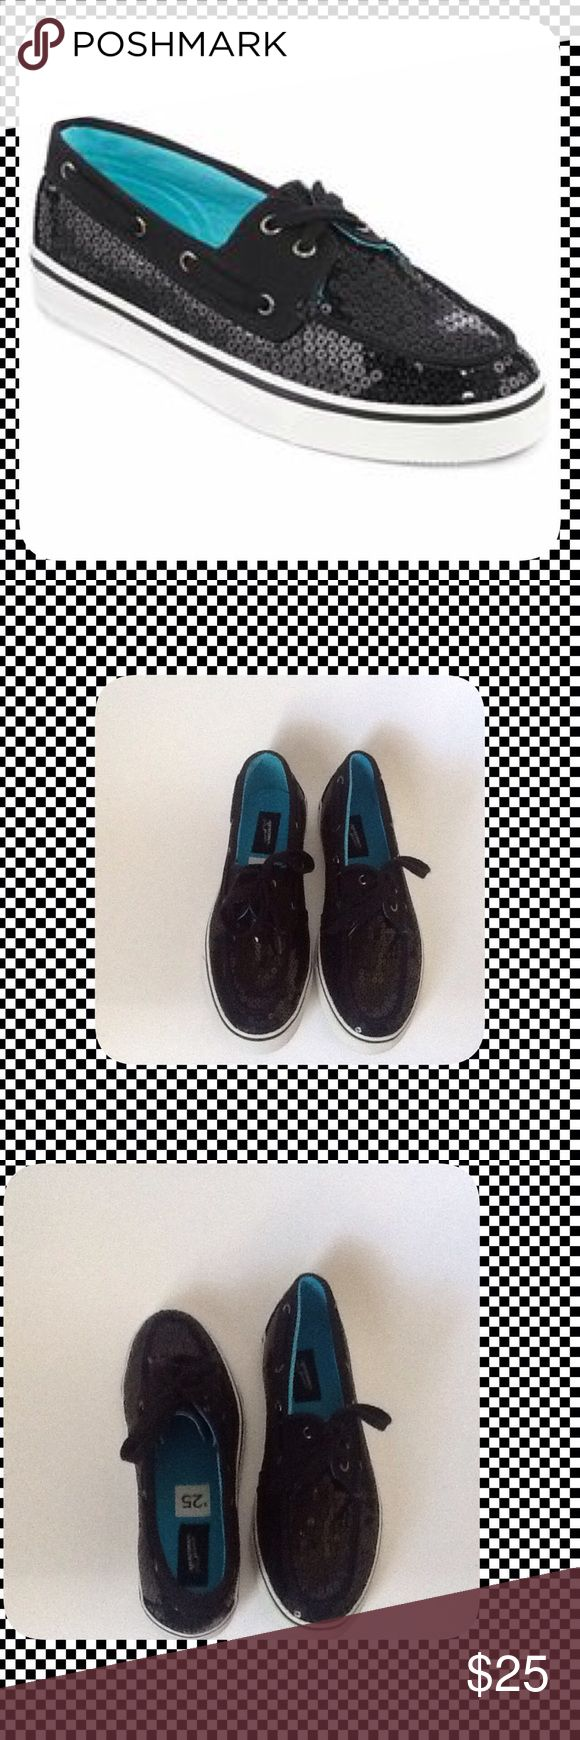 Arizona Black Sequin Shoes These Shoes are New and have Never been Worn!!! To keep Shipping low I will Ship Without the Box!!! Reasonable Offers Only!!! Arizona Jean Company Shoes